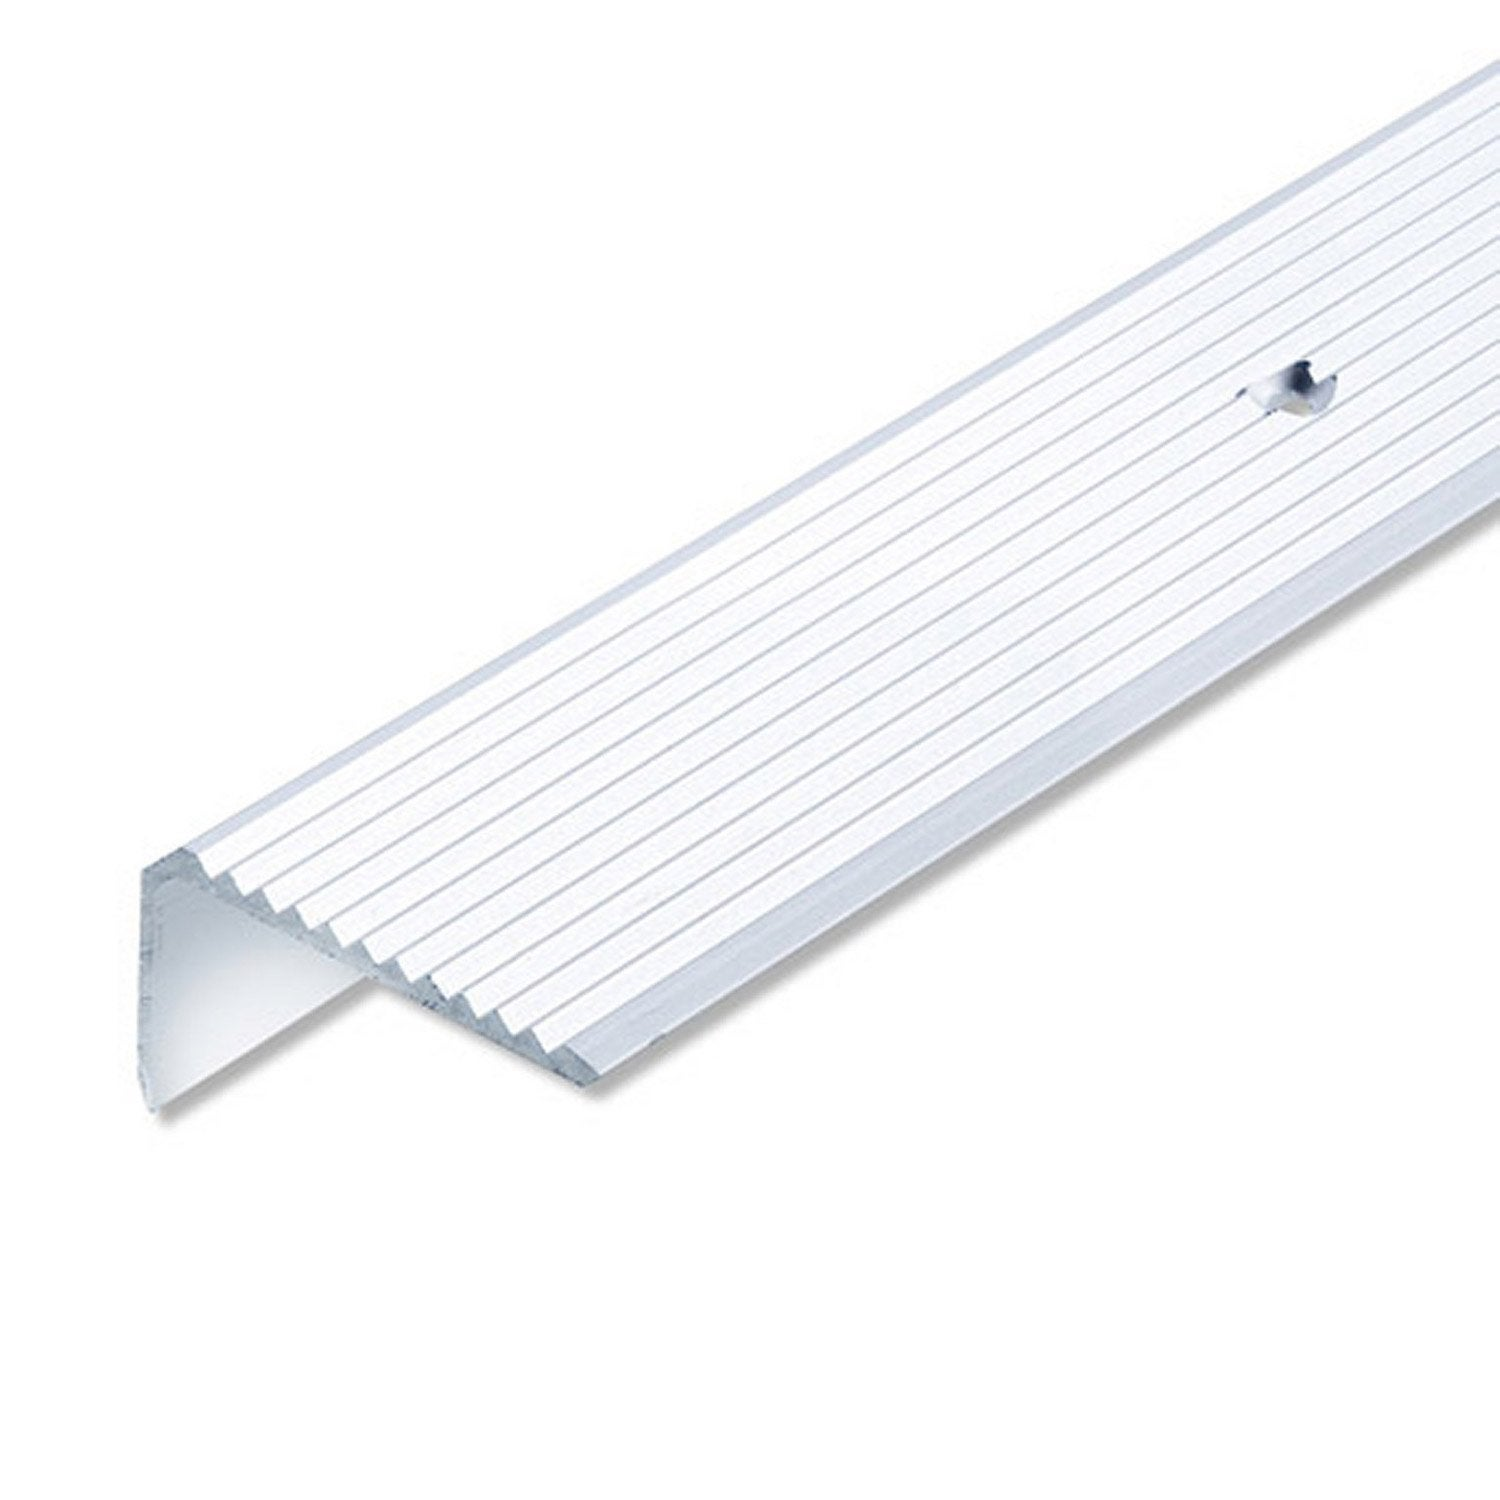 Prix pose escalier leroy merlin escaliers ring pixima - Monter un escalier escamotable ...